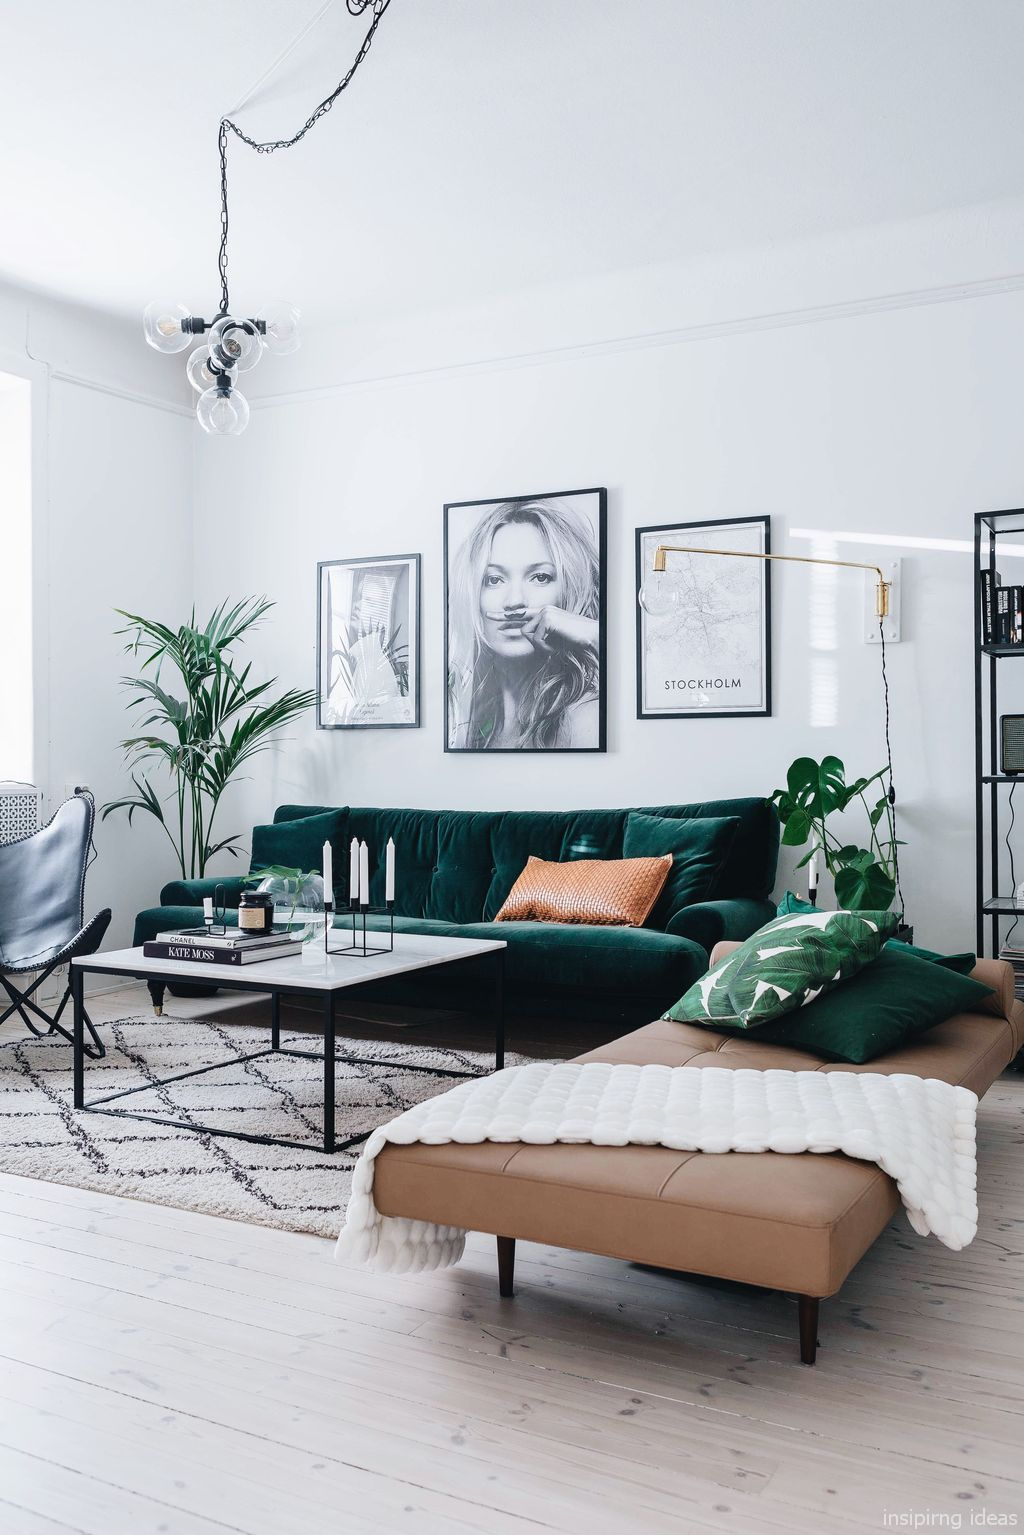 beautiful living room decorating ideas the post appeared first on dome decoration also home decor outlets inspiration scandinavianhomes in rh pinterest